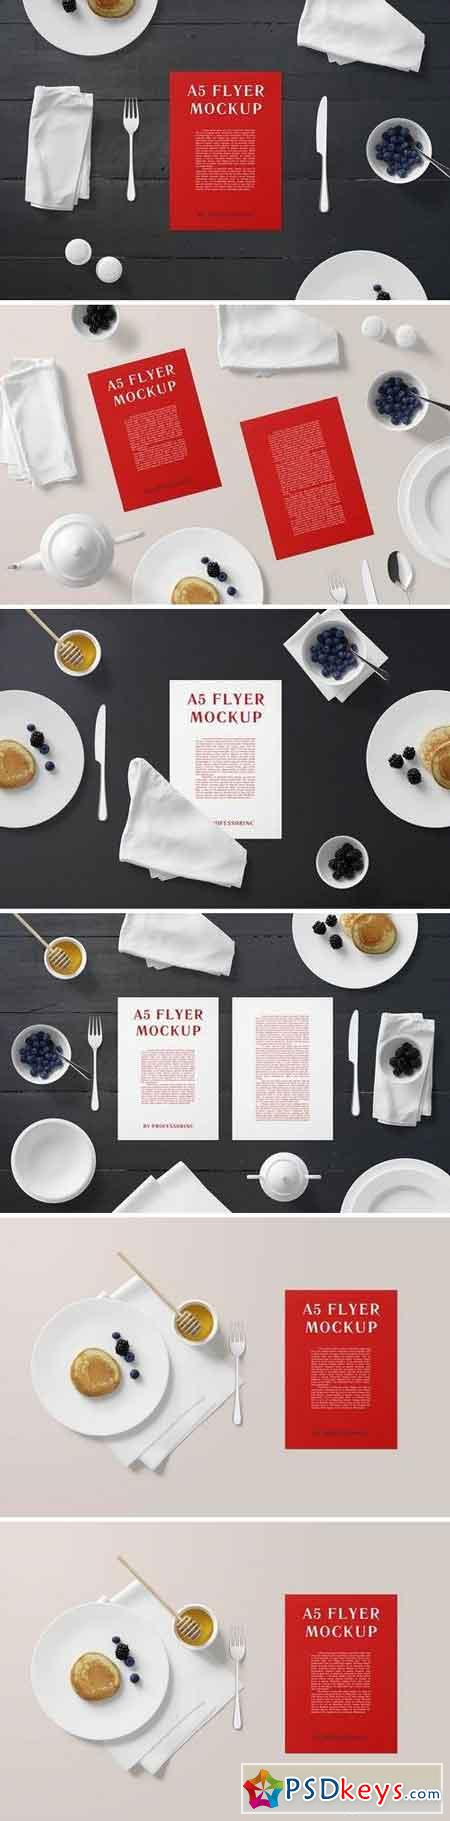 A5 Portrait Flyer Mockup - Breakfast Set